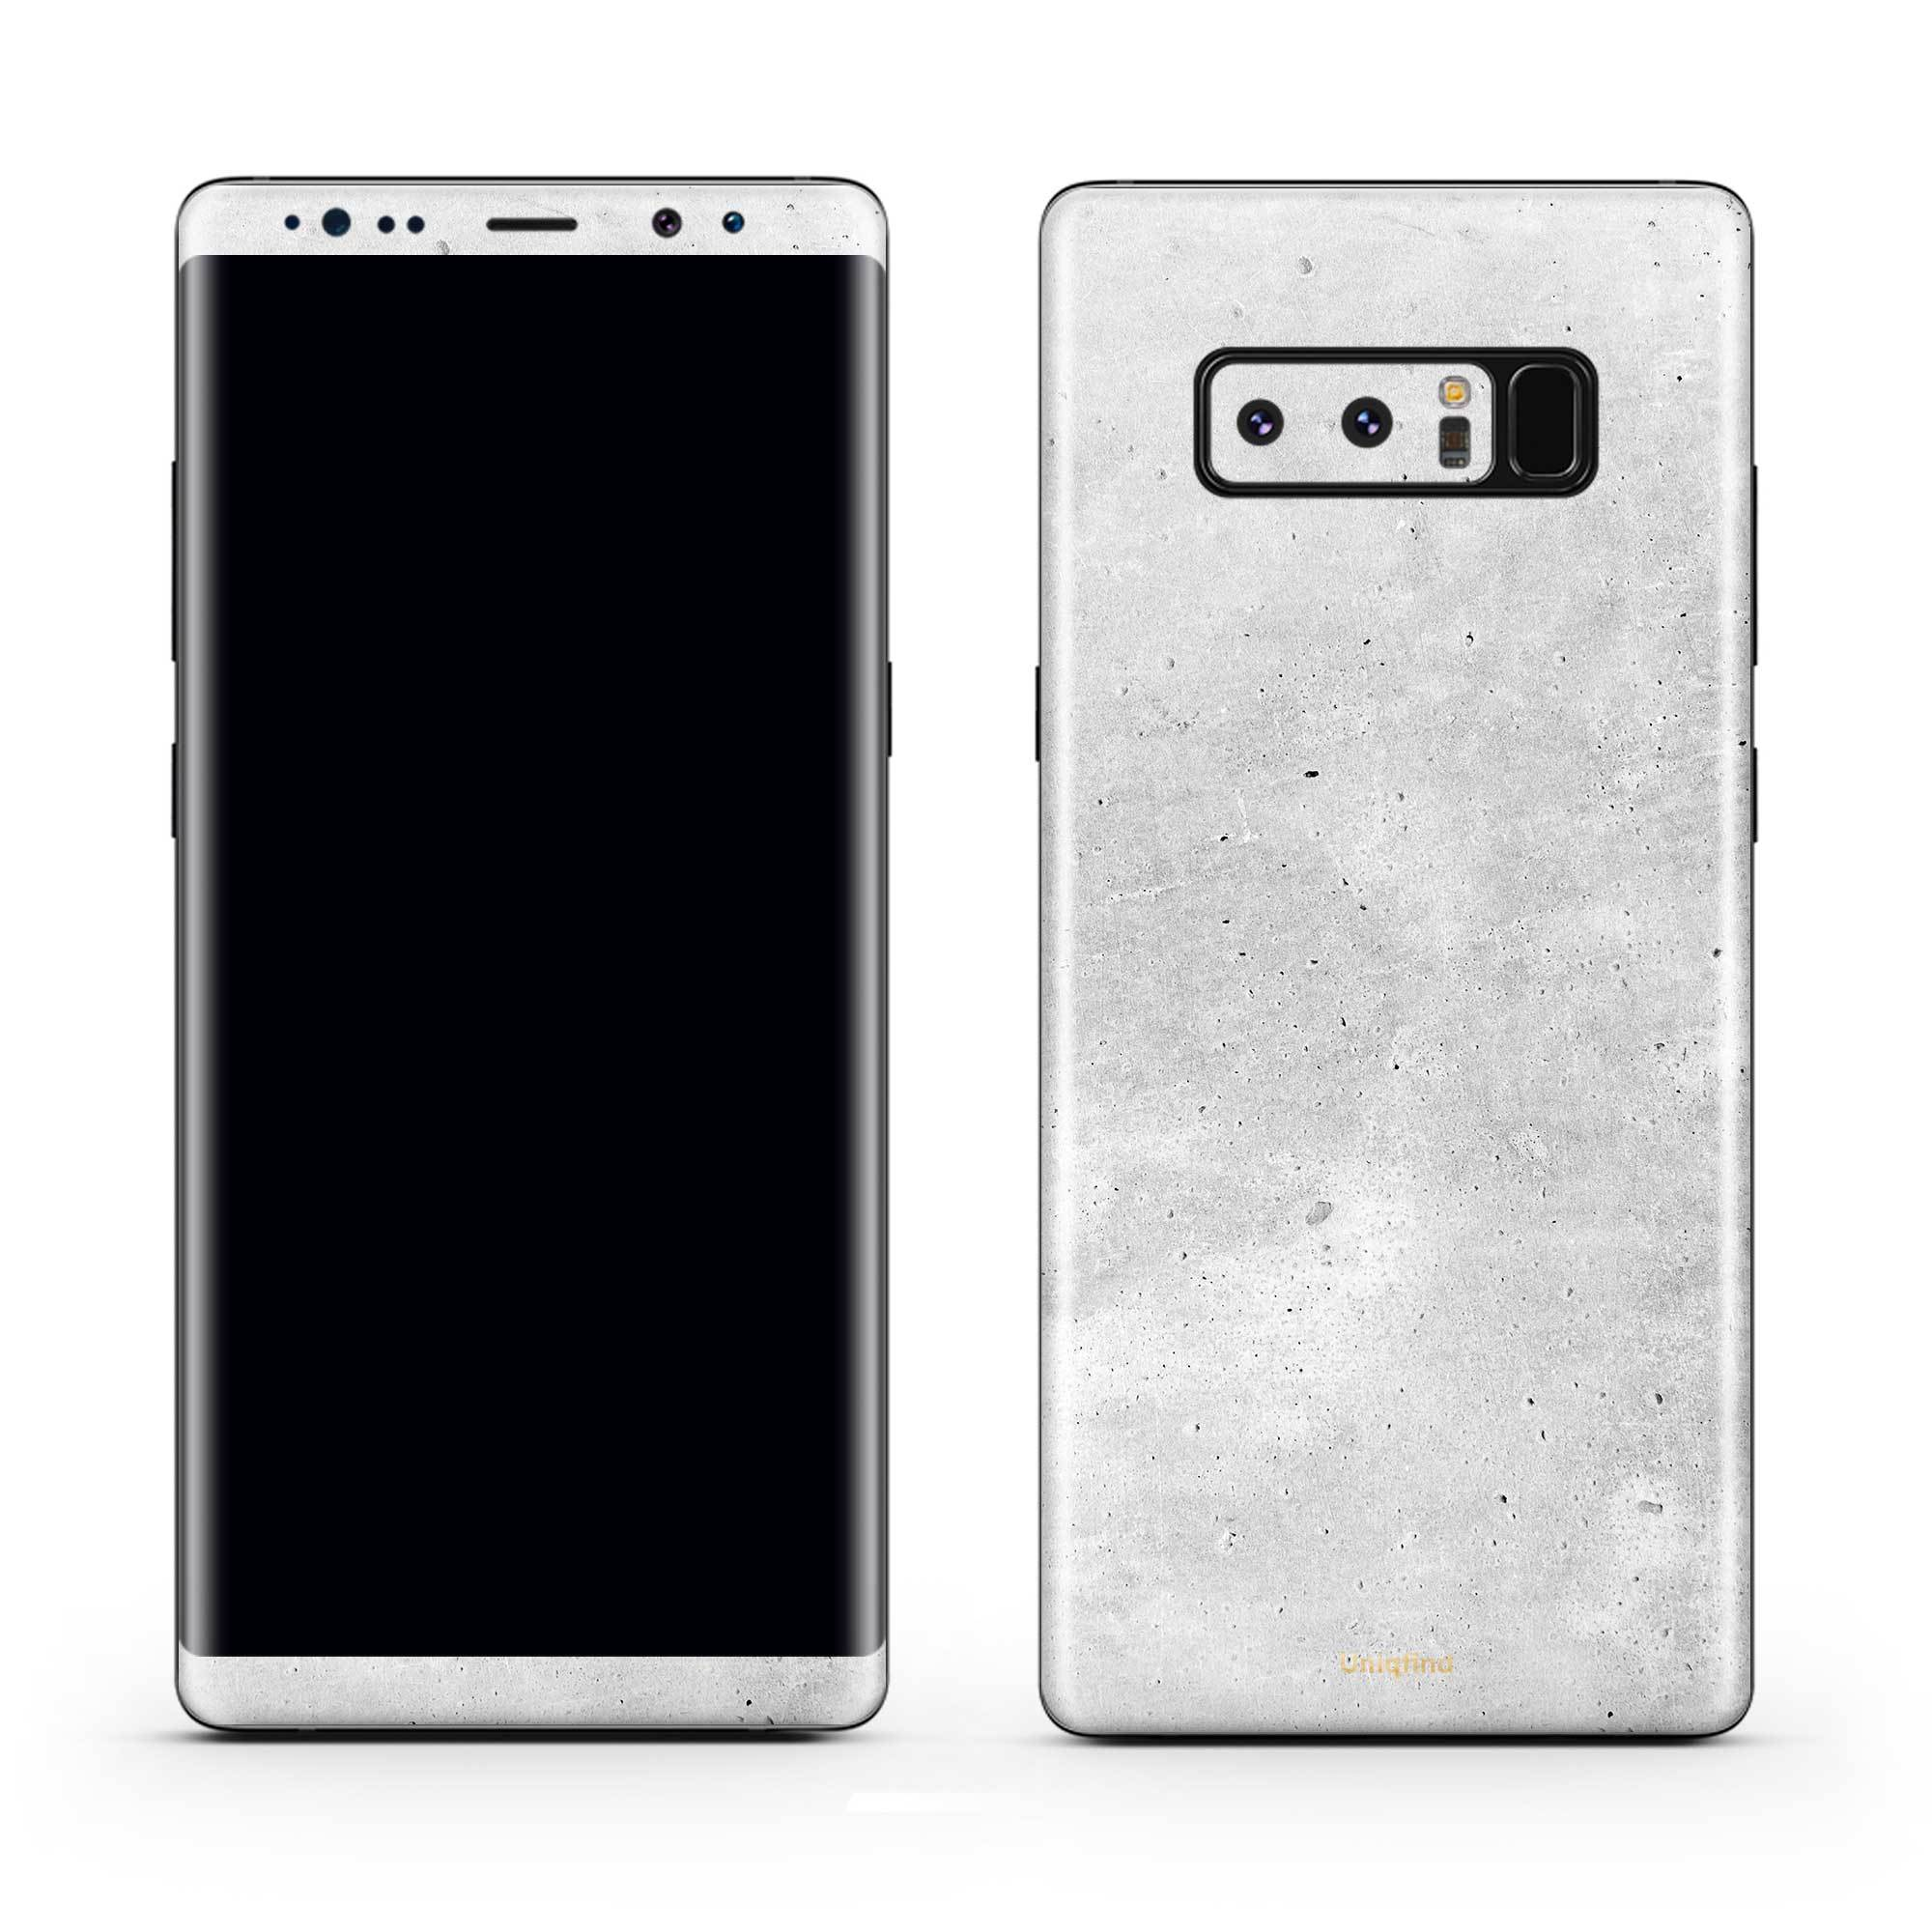 Concrete Galaxy Note 8 Skin + Case